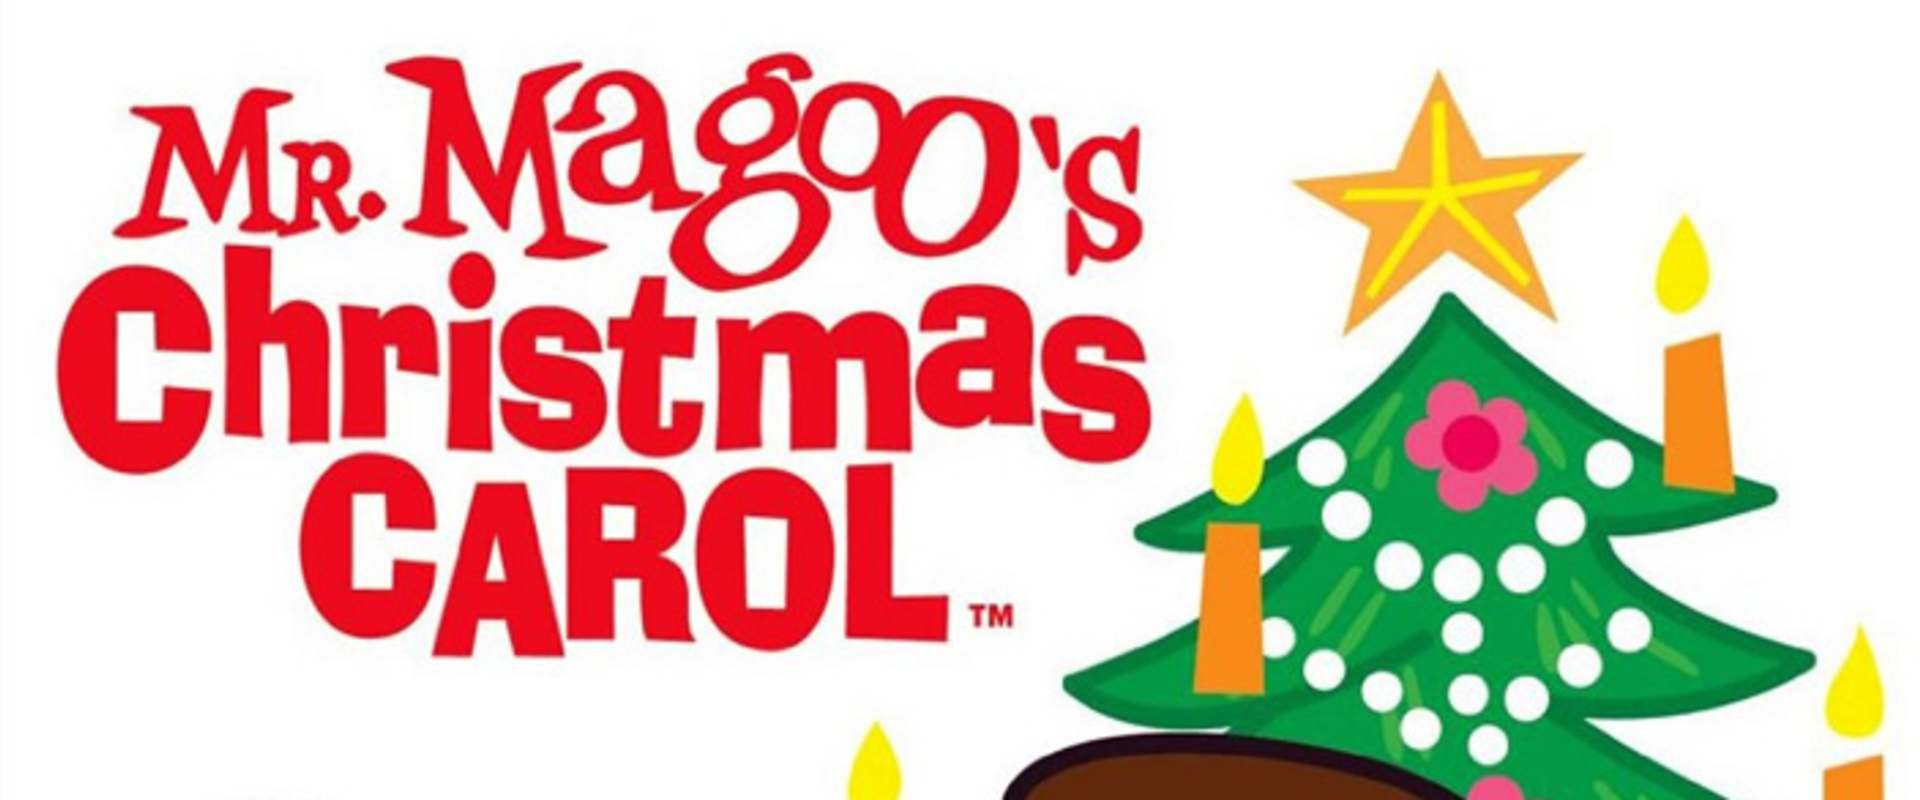 Mister Magoo's Christmas Carol background 1